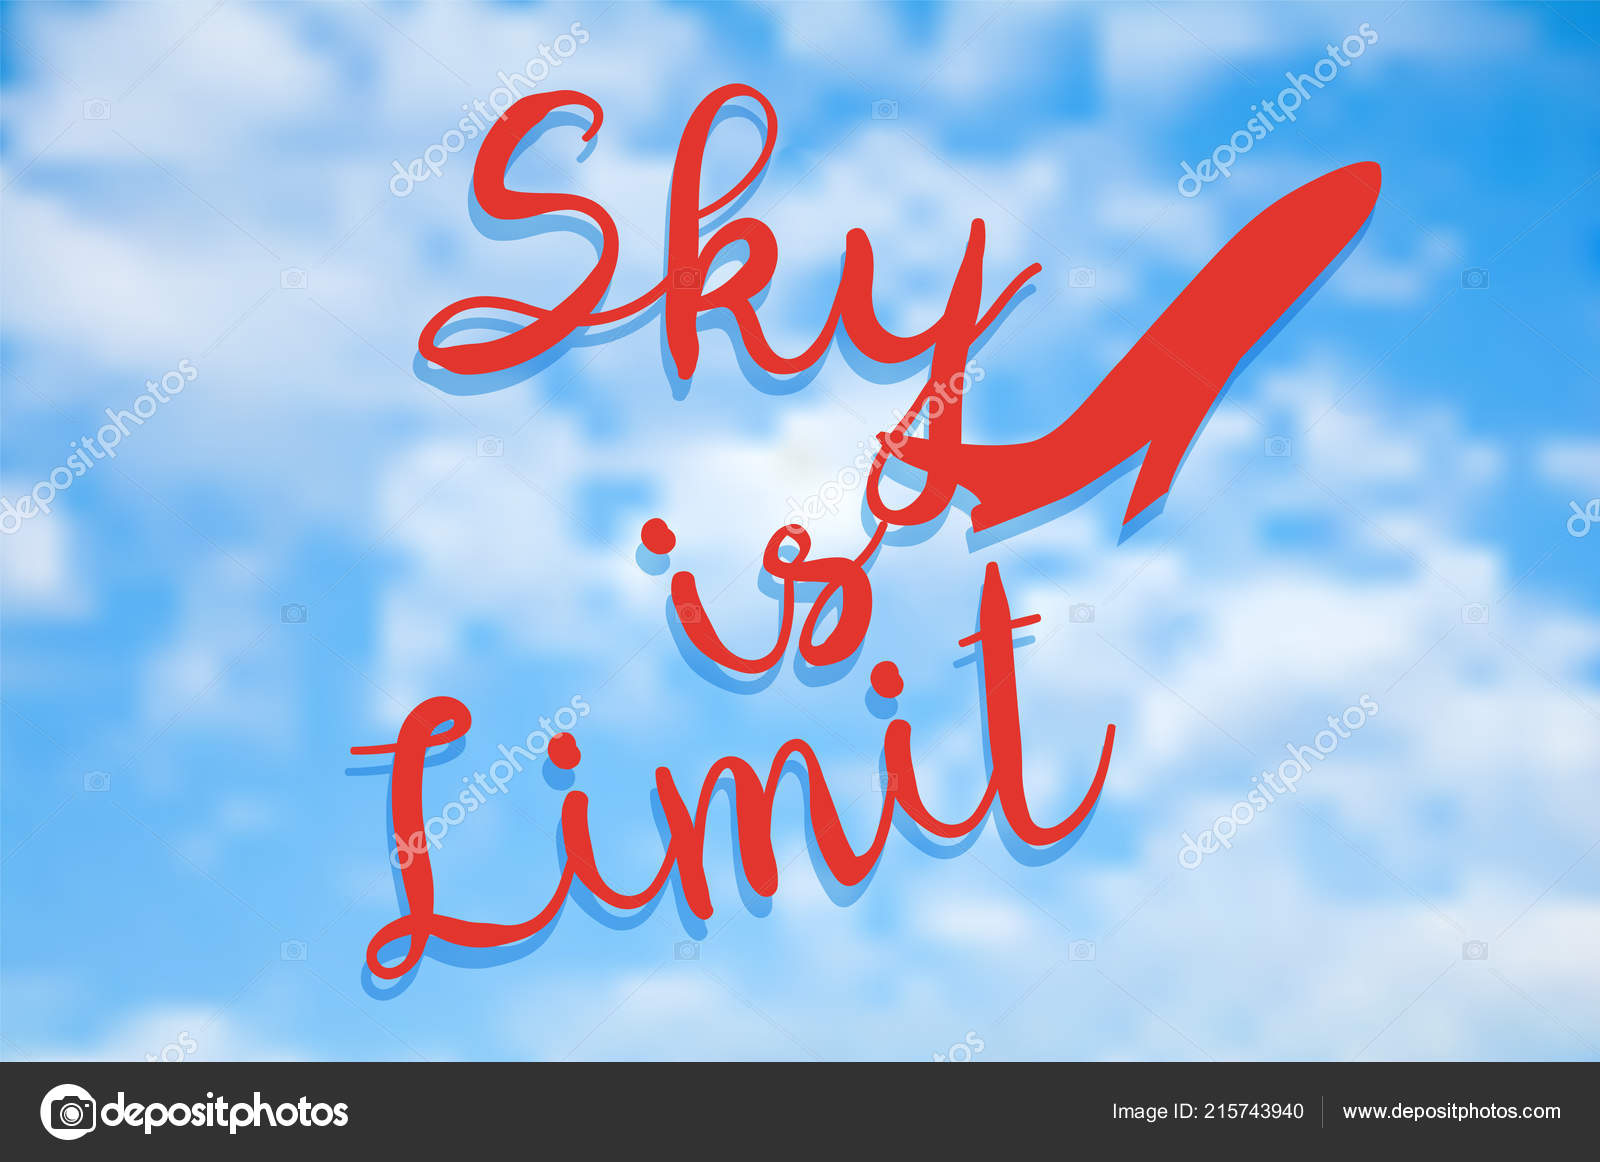 sky limit quote sky limit inspiring creative motivation quote